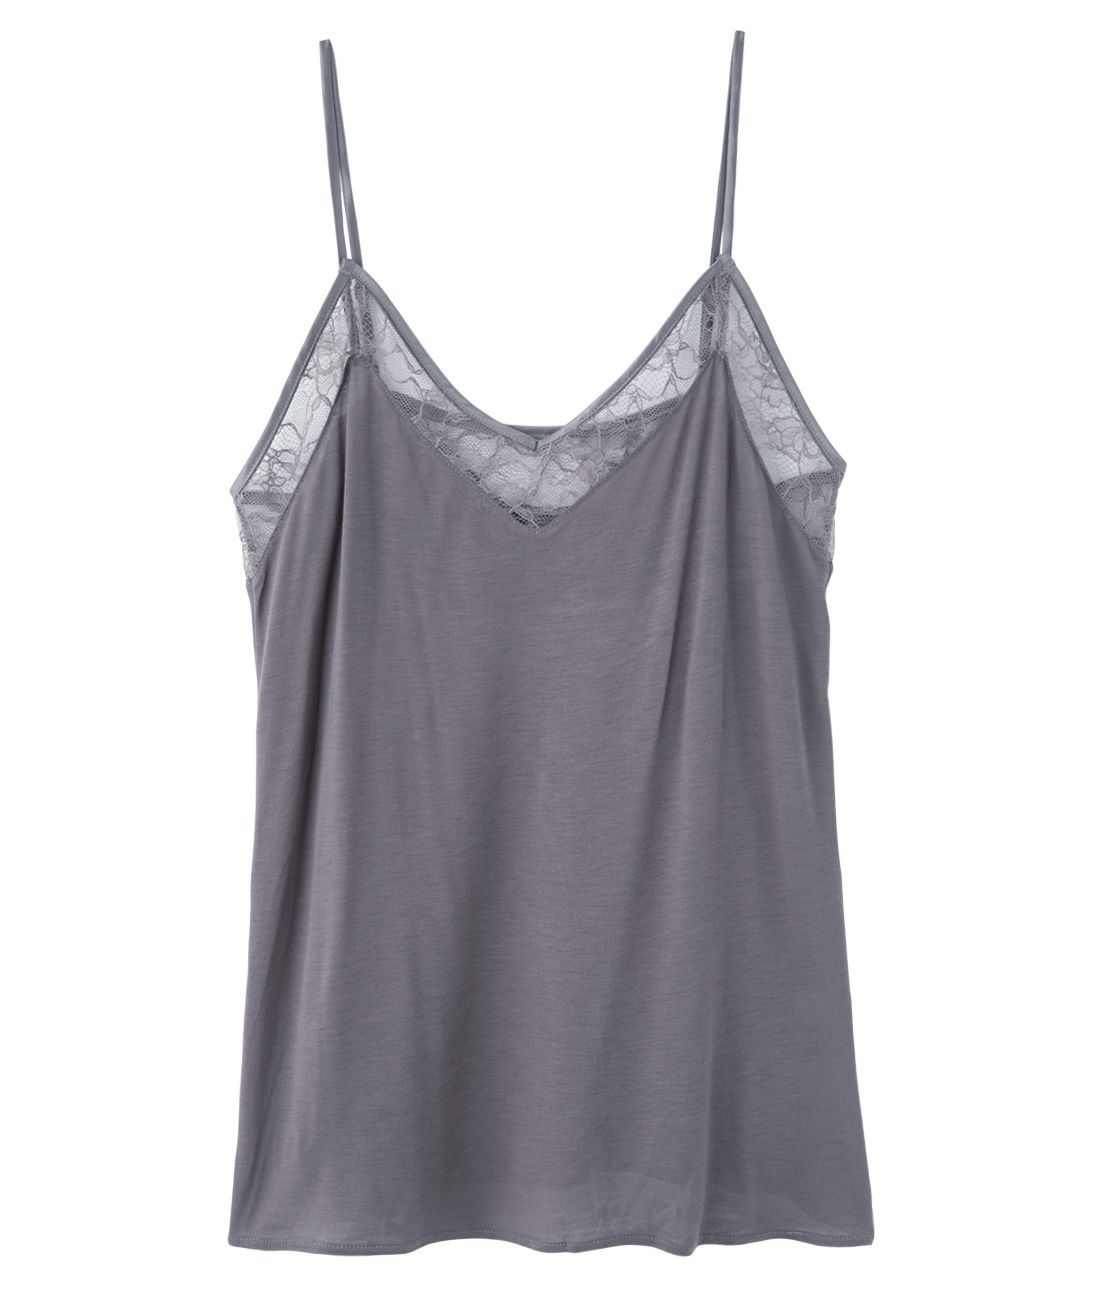 CAMI LABEL chic gross Cami